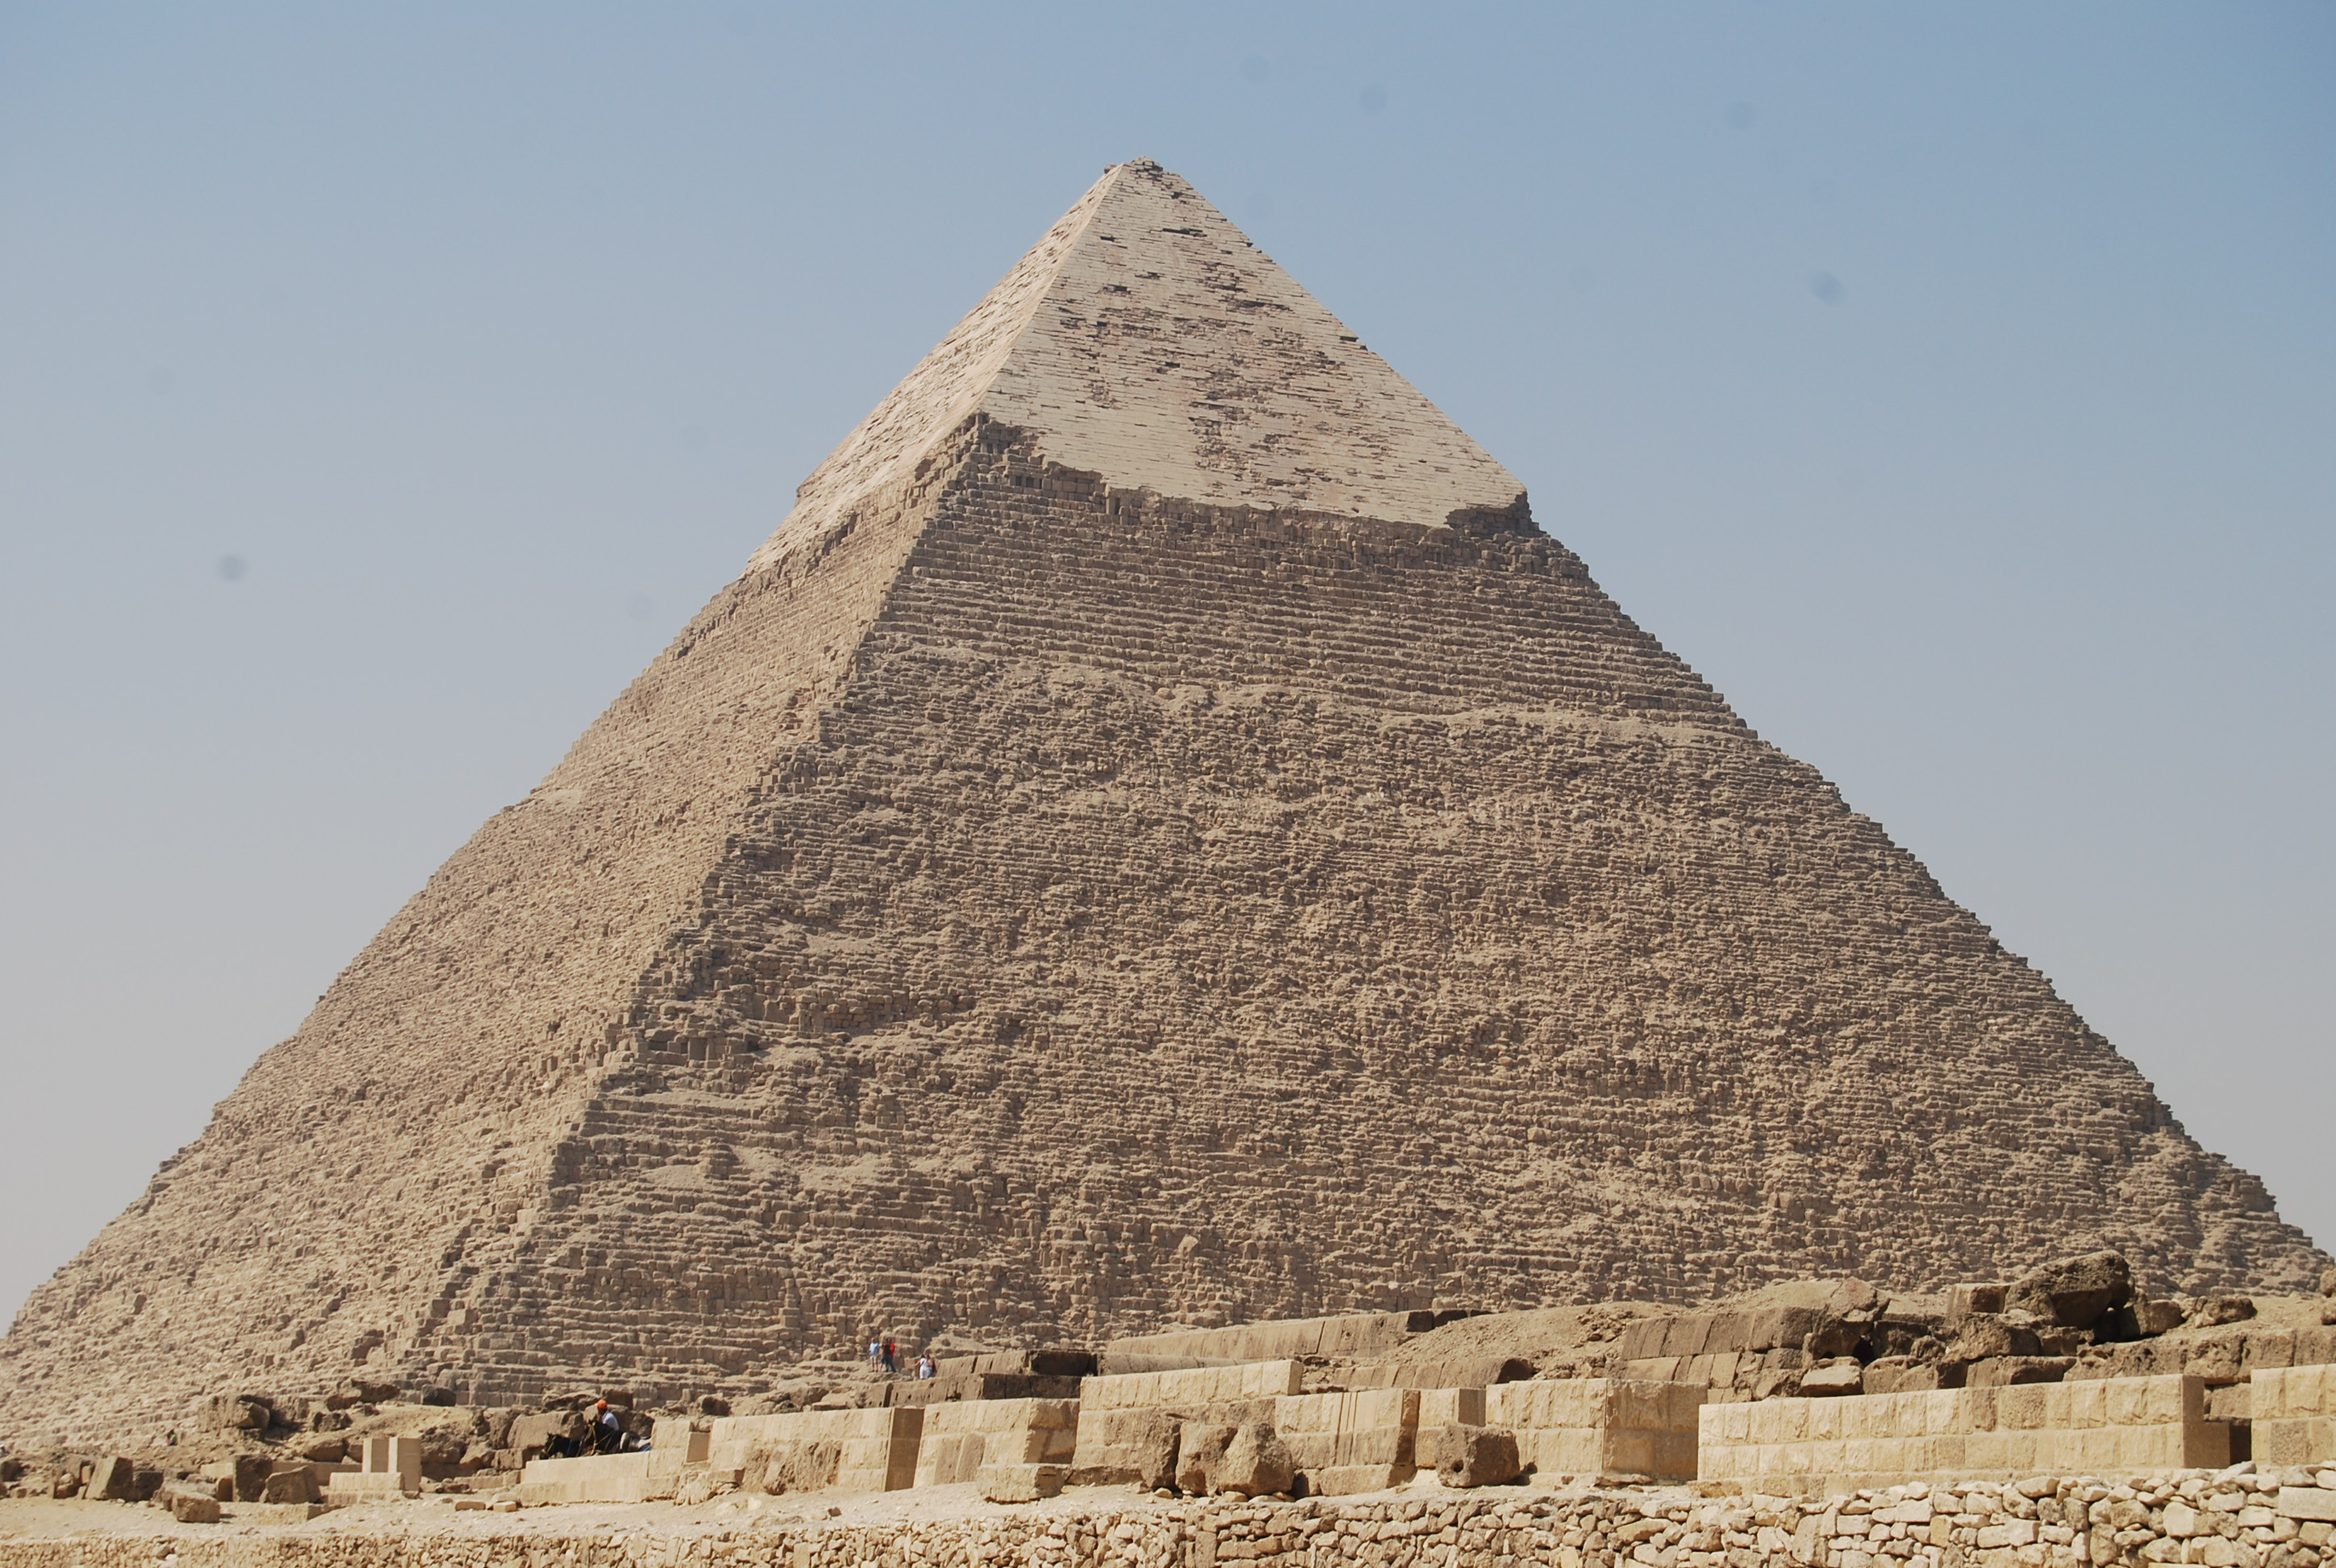 an analysis of the pyramids of egypt as the last remaining of the world Need writing essay about analysis of the pyramids buy your excellent college paper and have a+ grades or get access to database of 9 analysis of the pyramids essays samples.